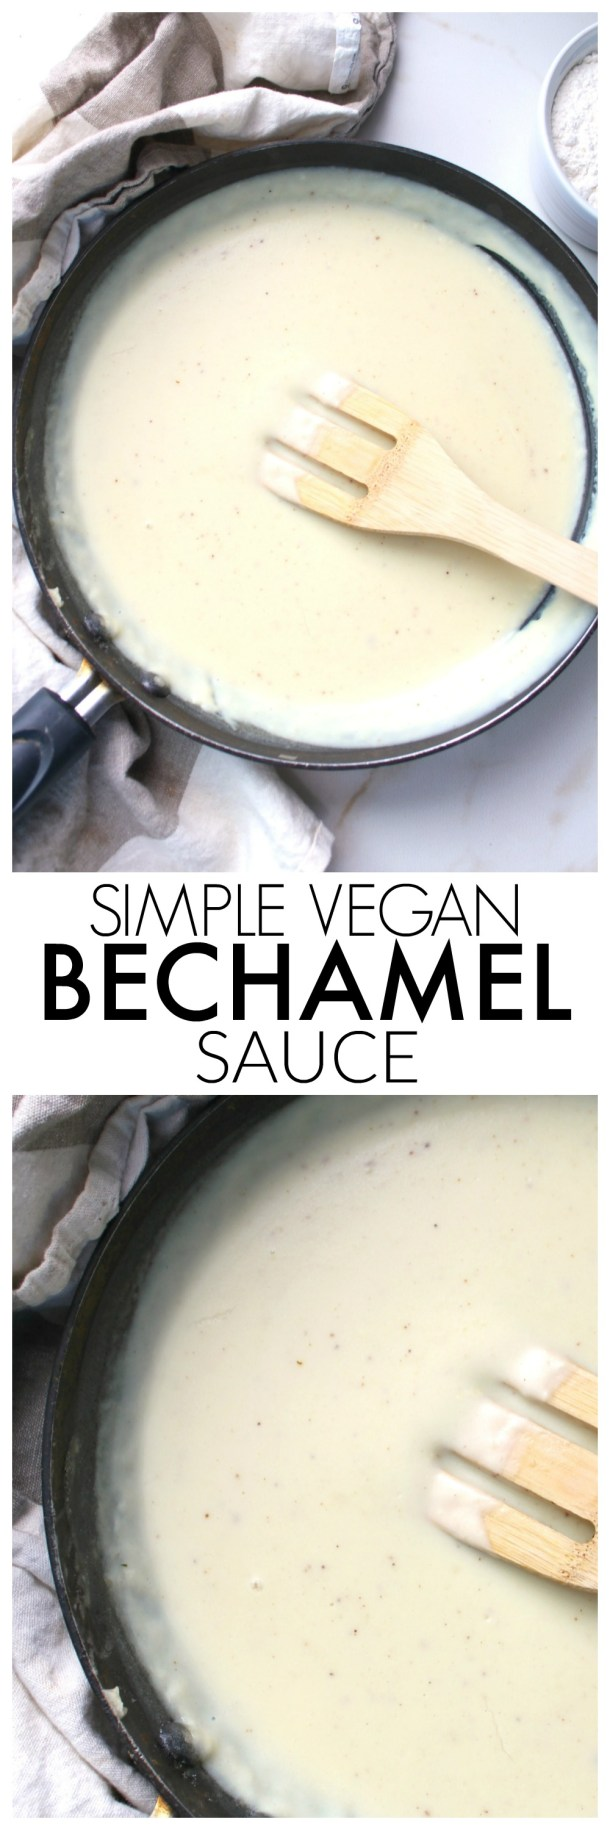 A classic creamy white sauce is vegan-ized with this Simple Vegan Bechamel Sauce recipe. The perfect base sauce for any pasta dish | ThisSavoryVegan.com #vegan